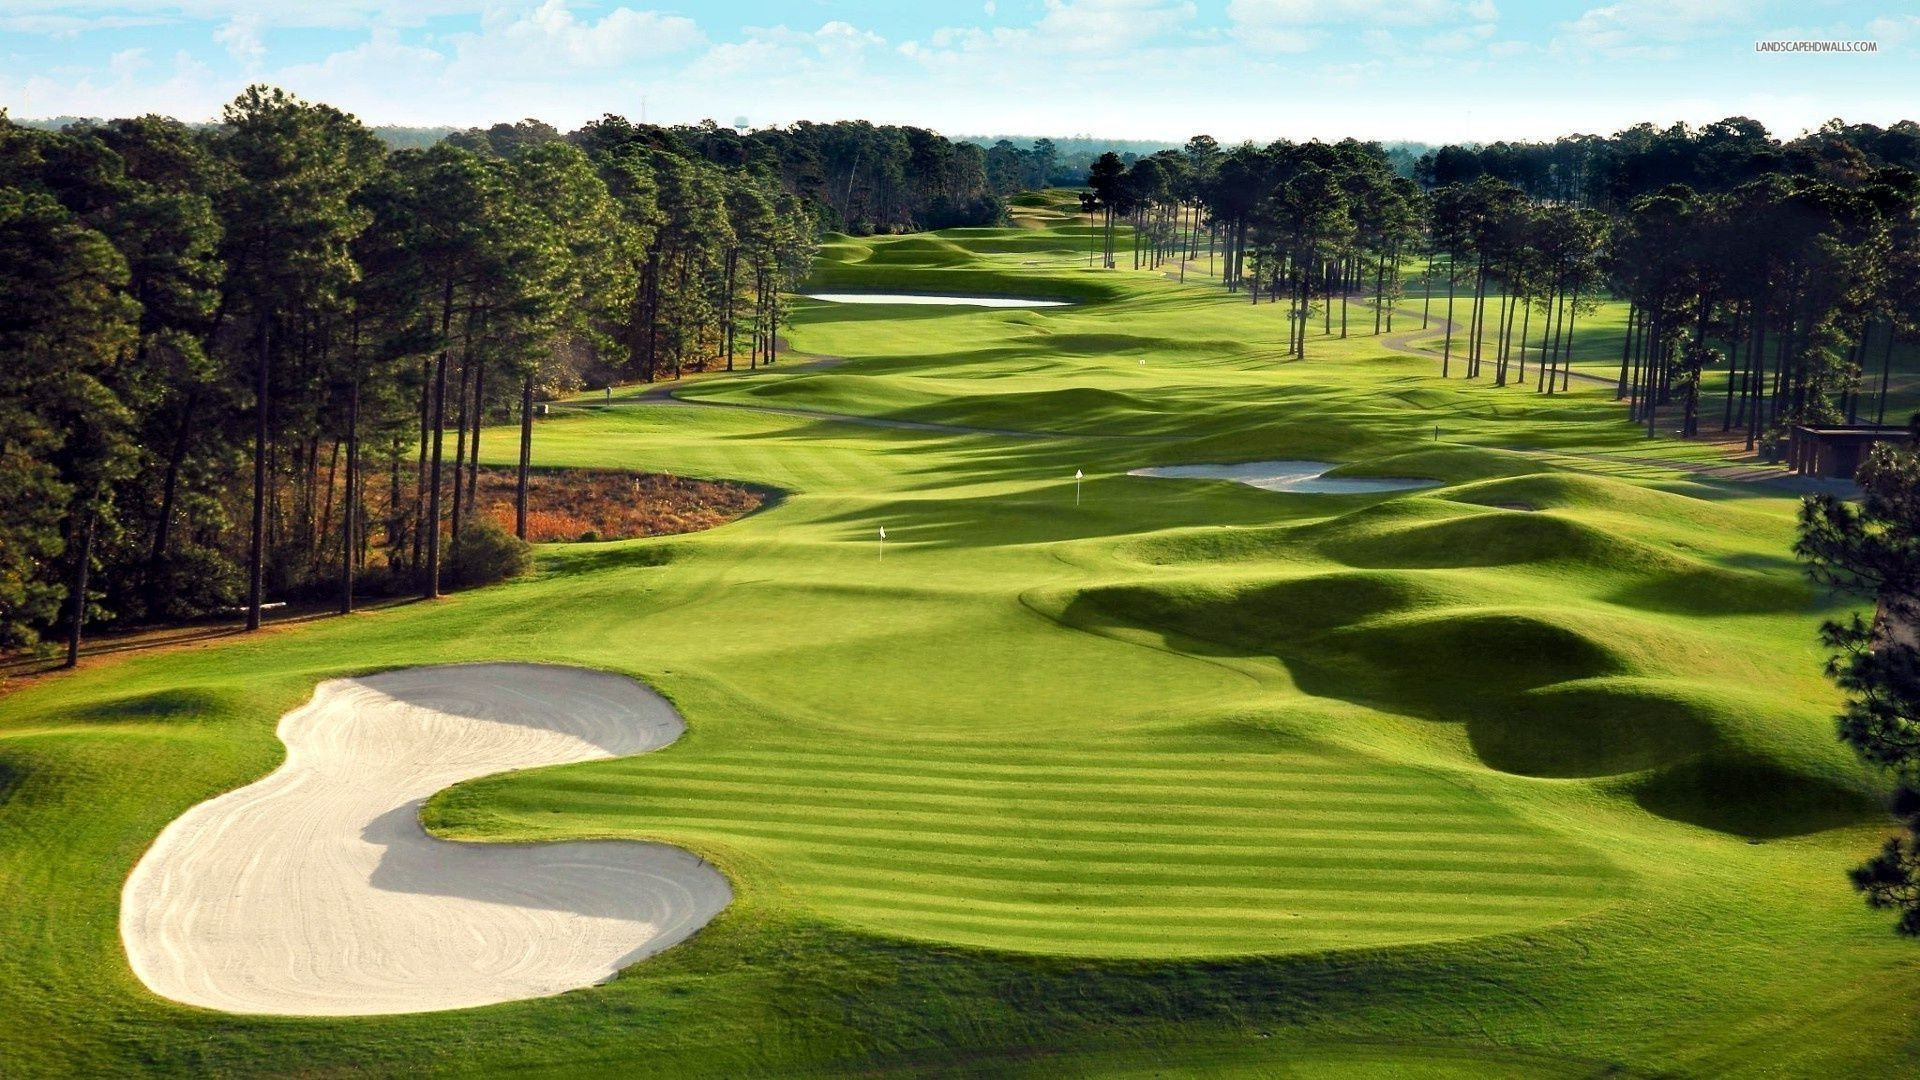 golf course wallpaper for iphone - download new golf course